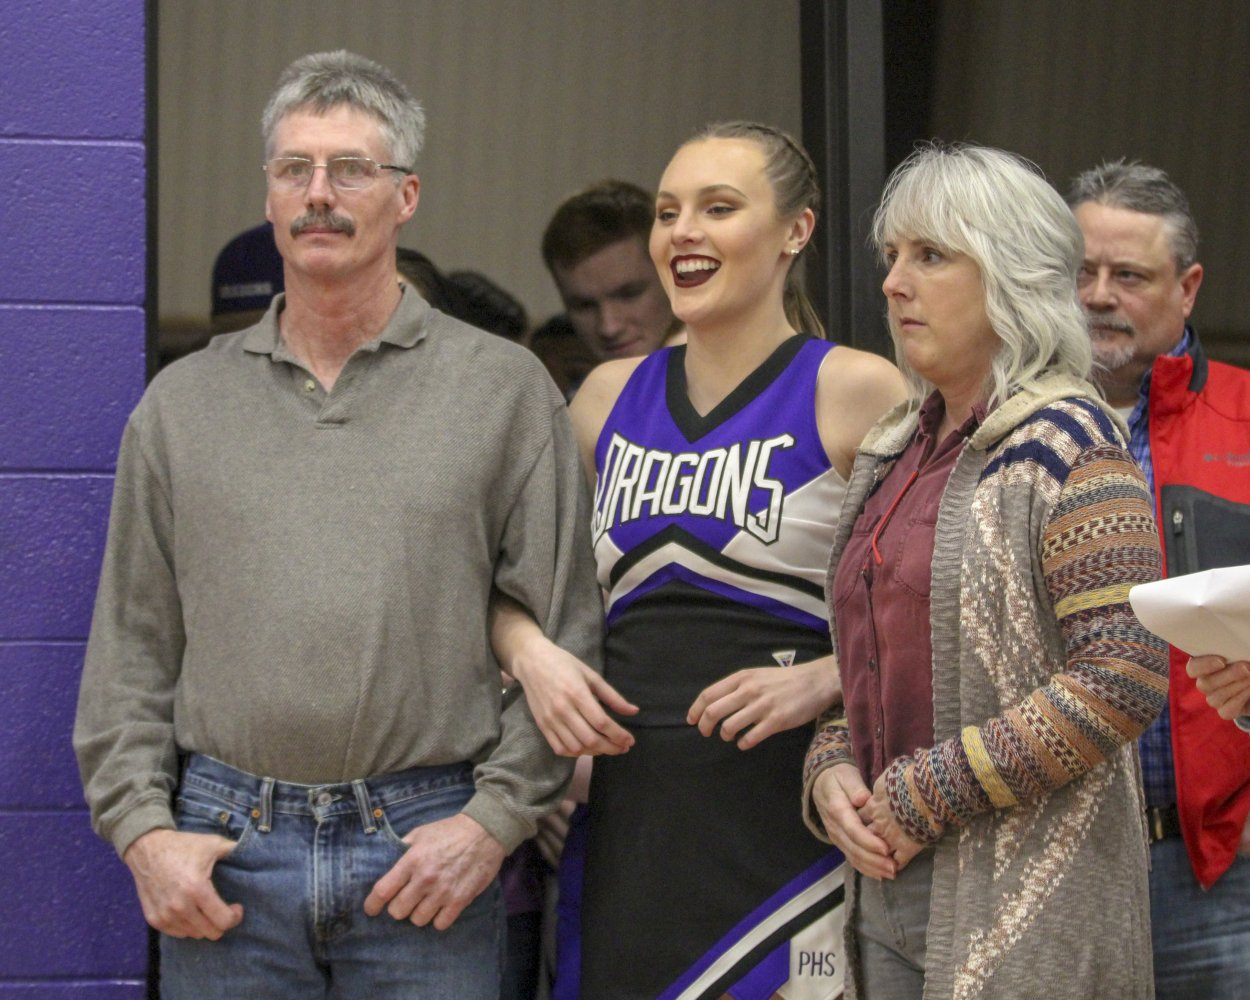 SeniorNight_2.21.19_Konopelko002